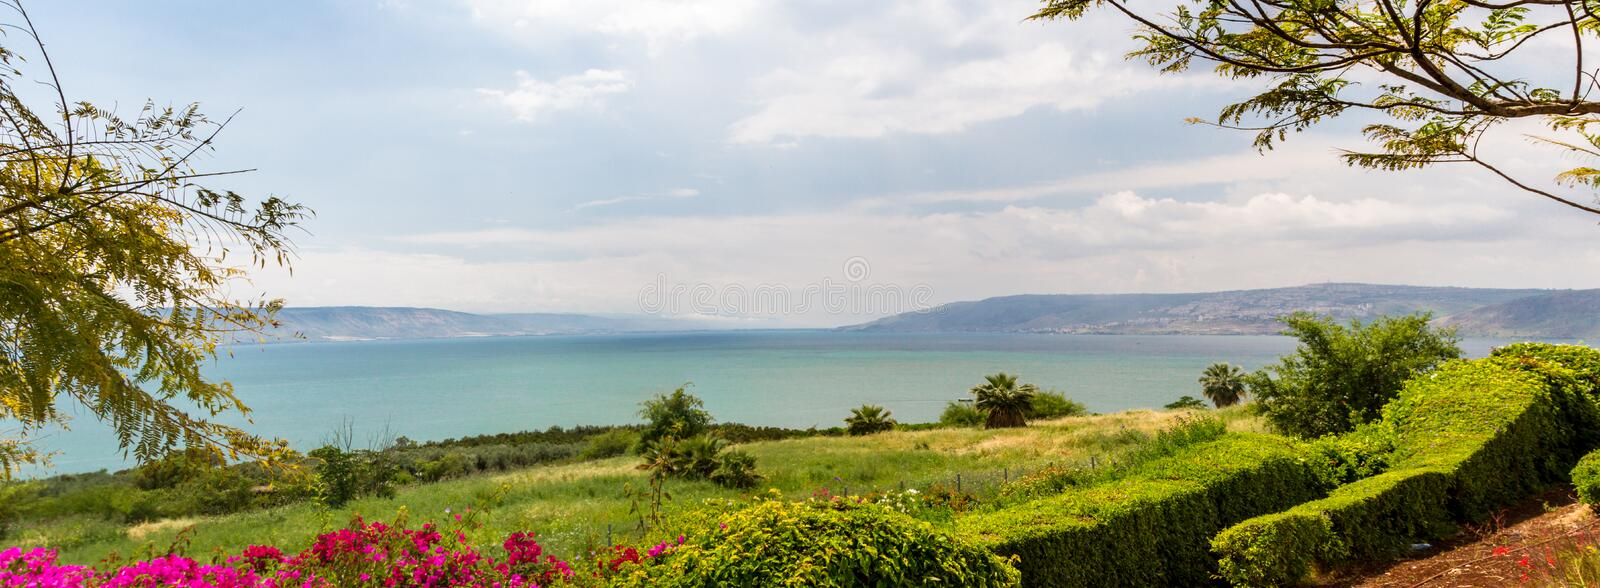 Panoramic view of the sea of Galilee from the Mount of Beatitudes, Israel royalty free stock image